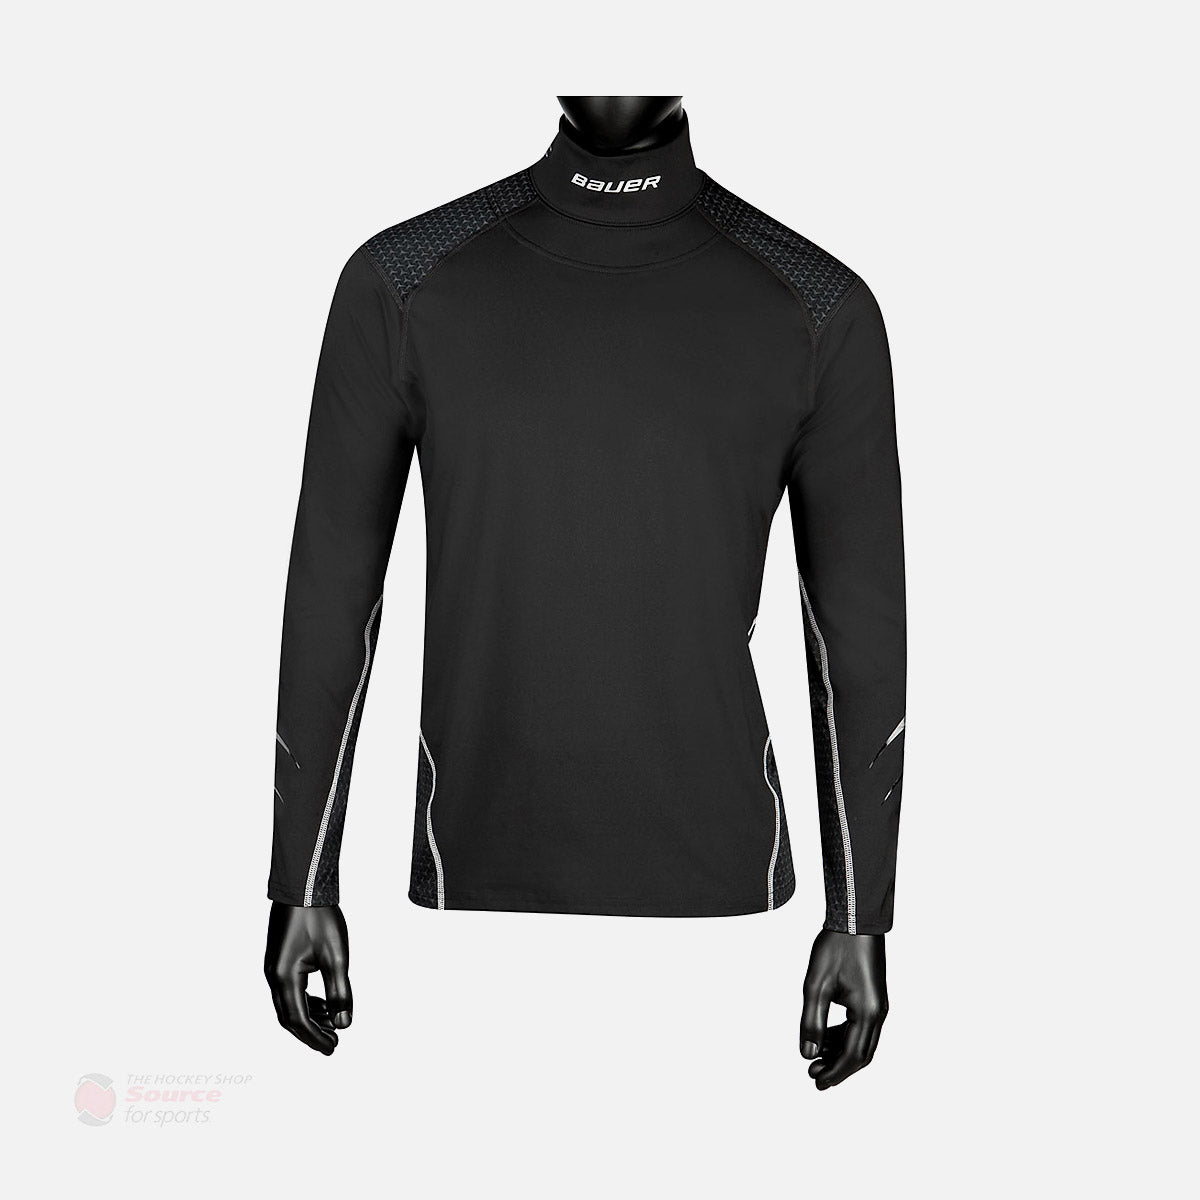 Bauer NG Premium L/S Senior Neck Guard Shirt